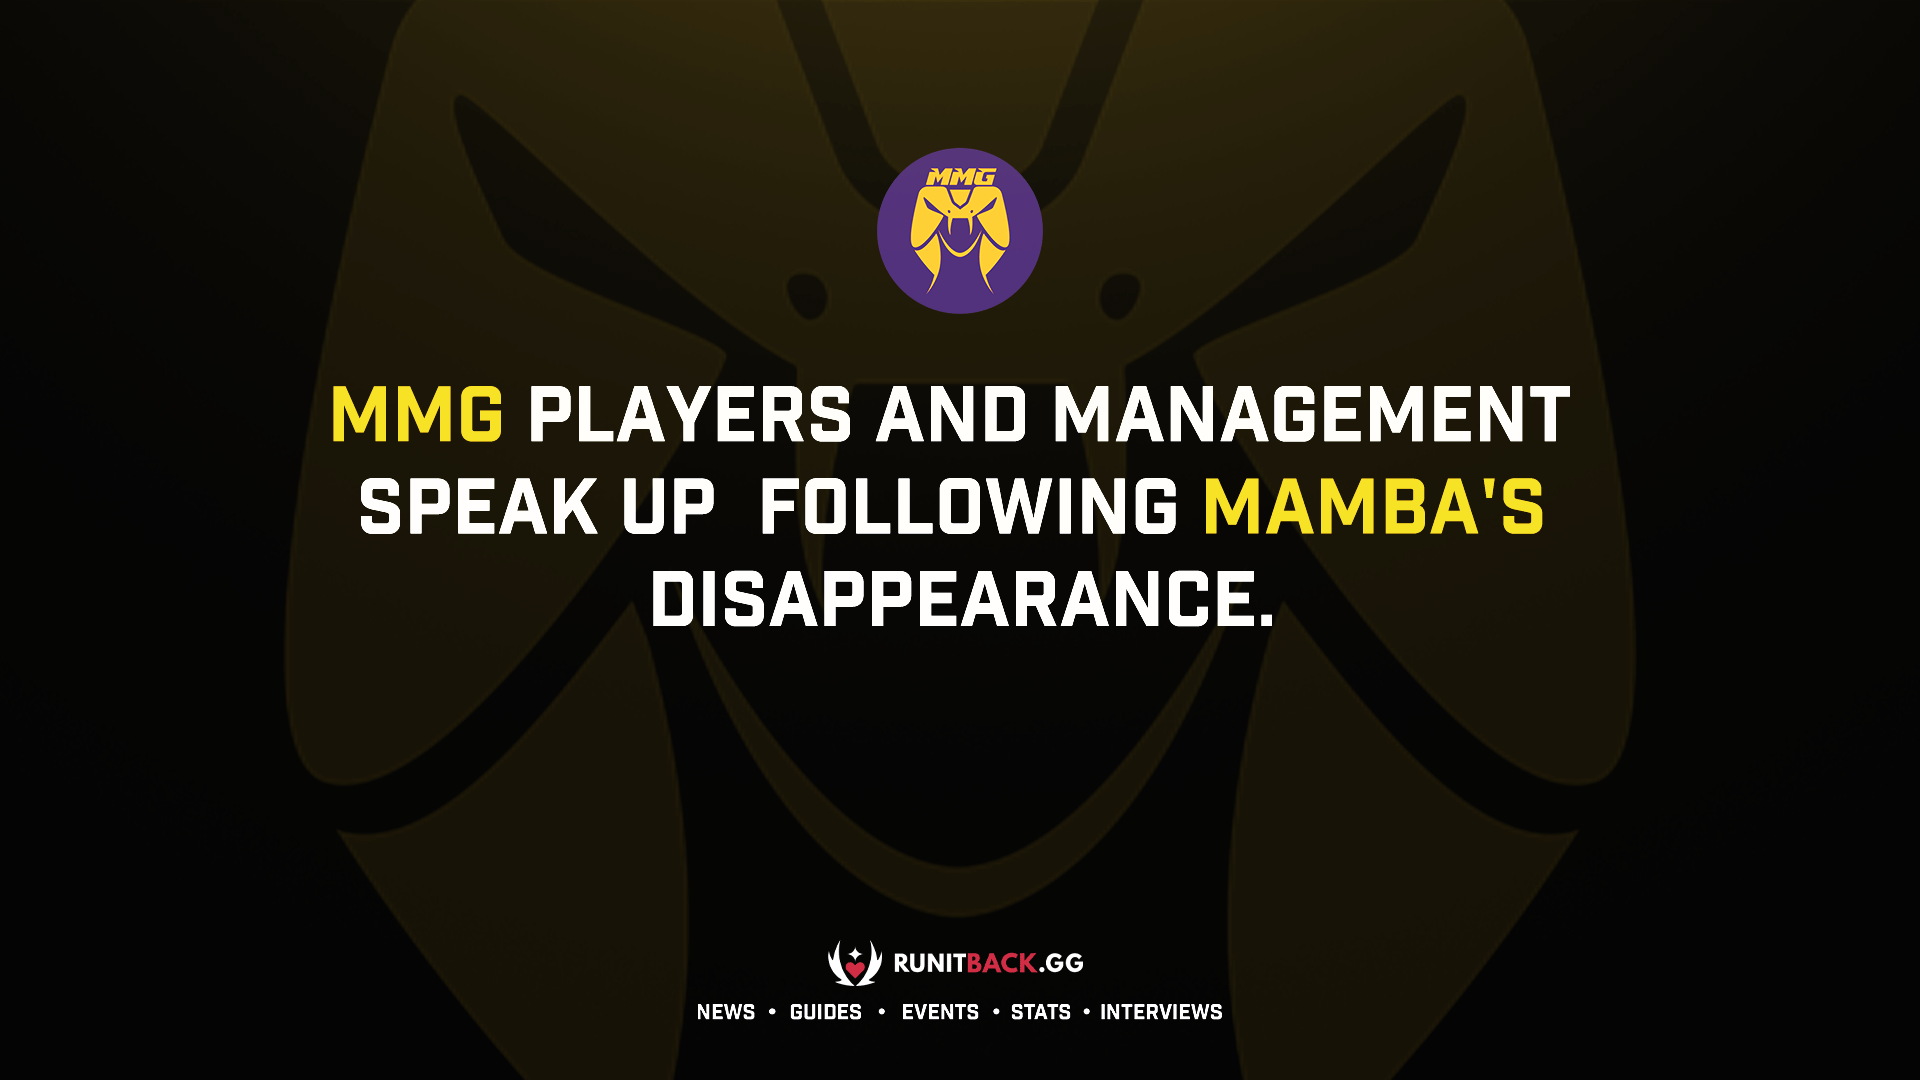 Exclusive: MMG players and management speak up following mamba's disappearance